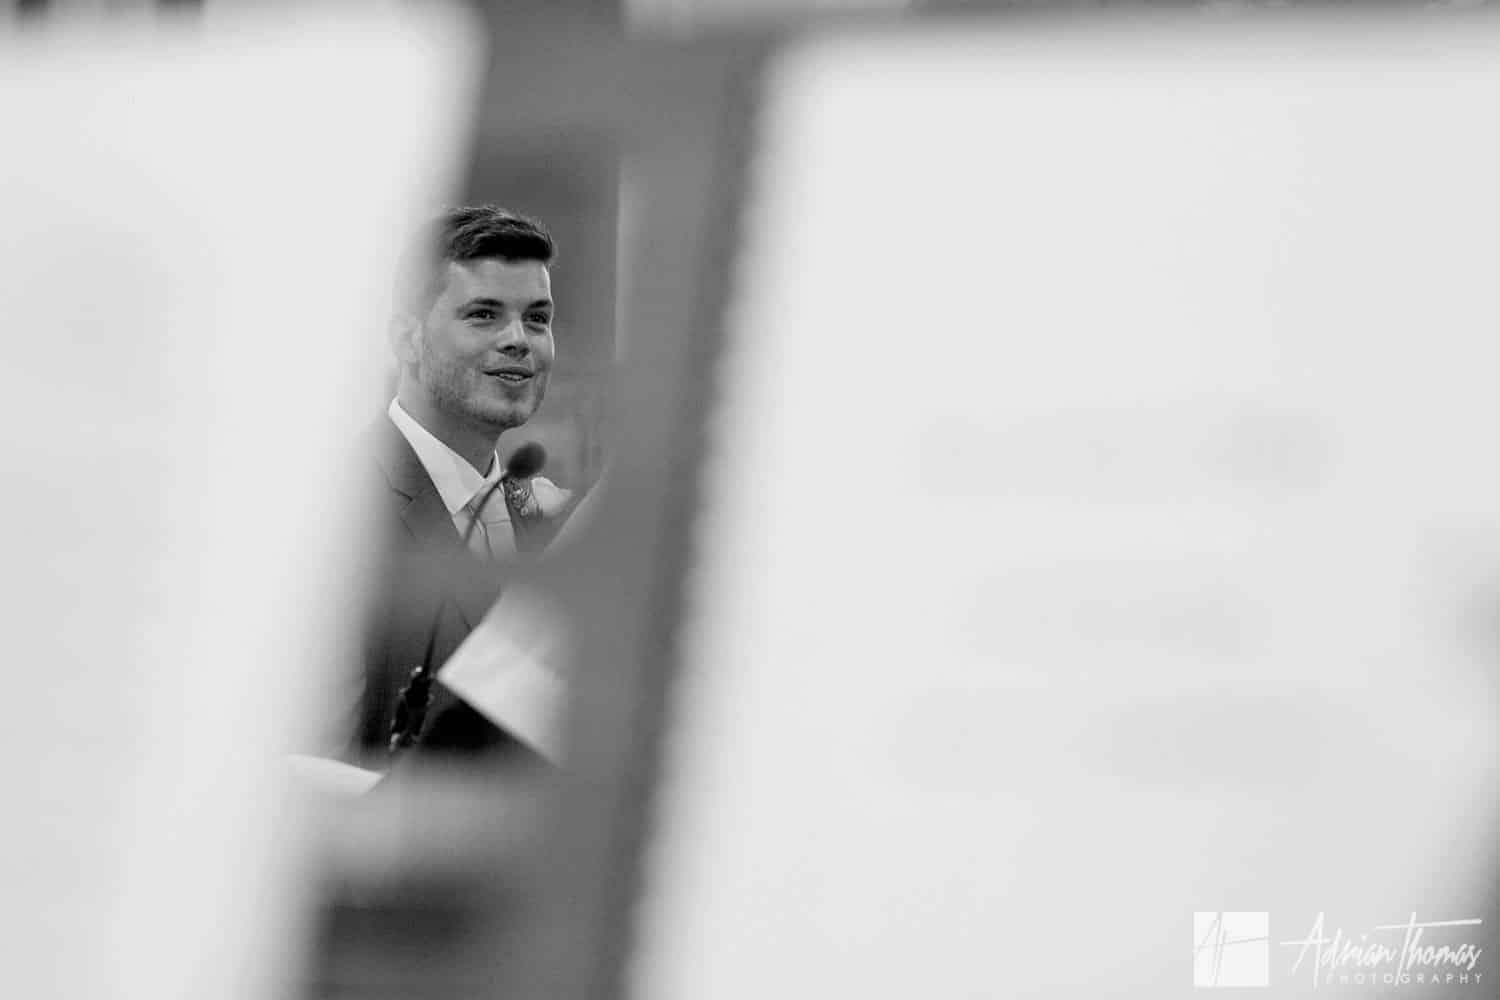 Groom smiling during his ceremony in church.